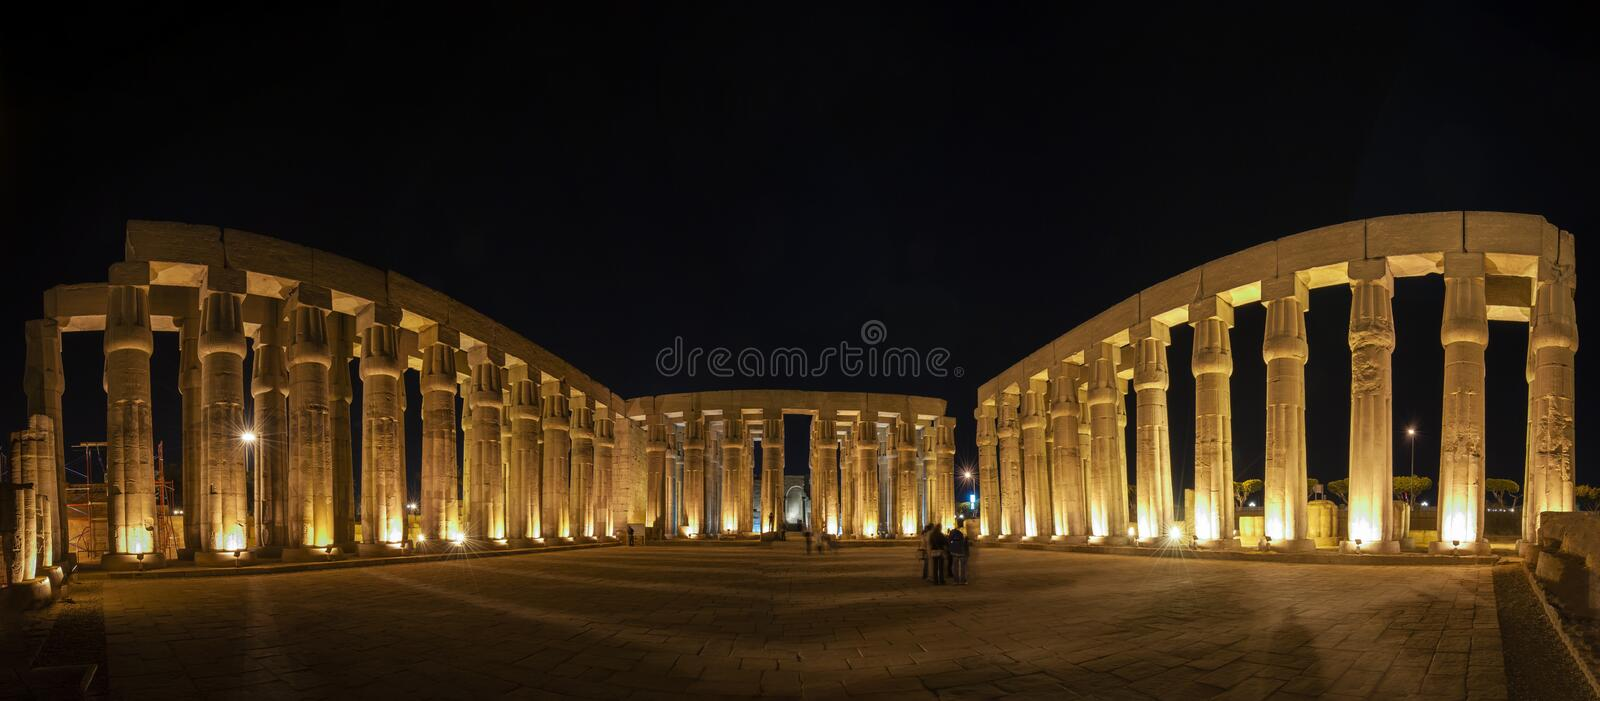 Panorama of large courtyard with ancient egyptian temple columns at night. Panoramic view of courtyard with large columns at the ancient egyptian Luxor temple royalty free stock photos